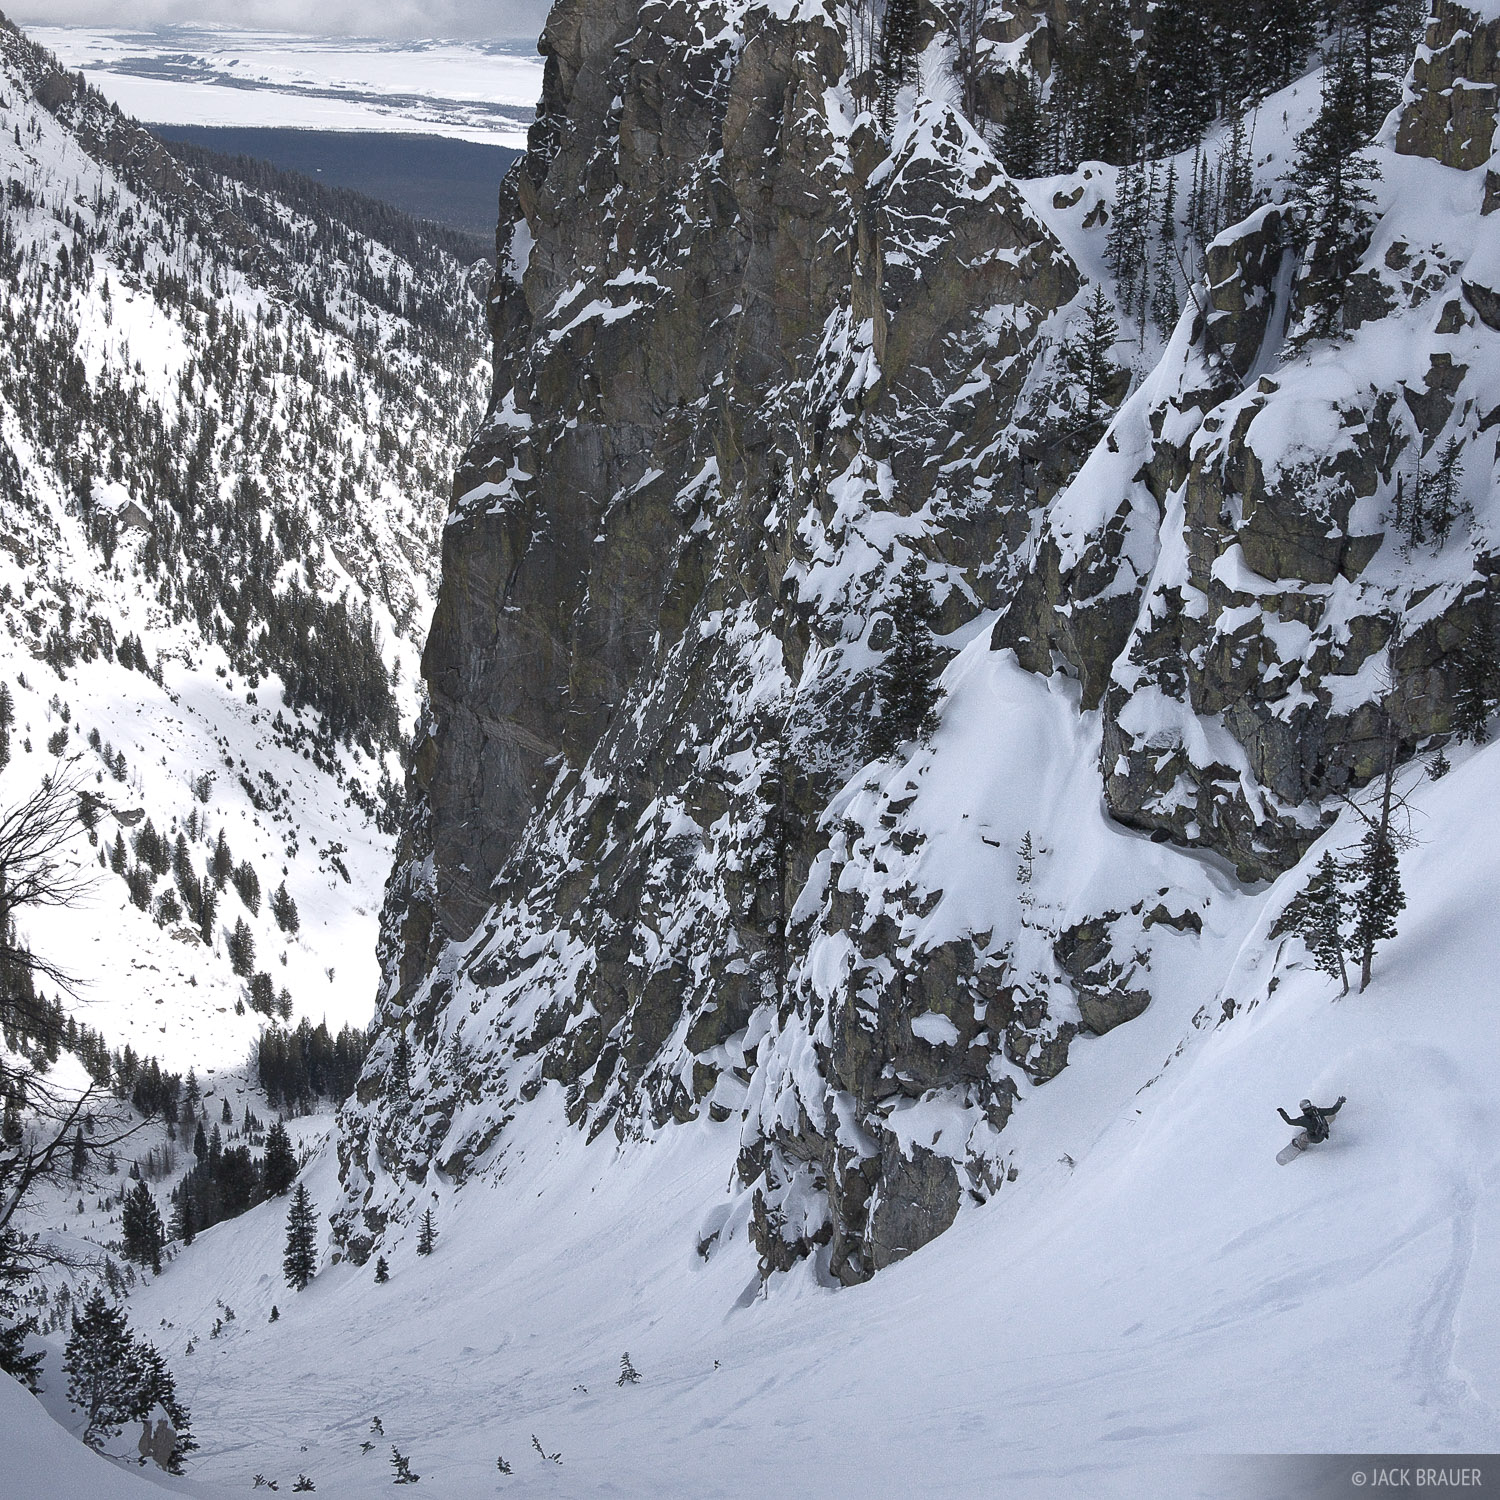 snowboarding, Jackson Hole, Wyoming, Endless Couloir, photo